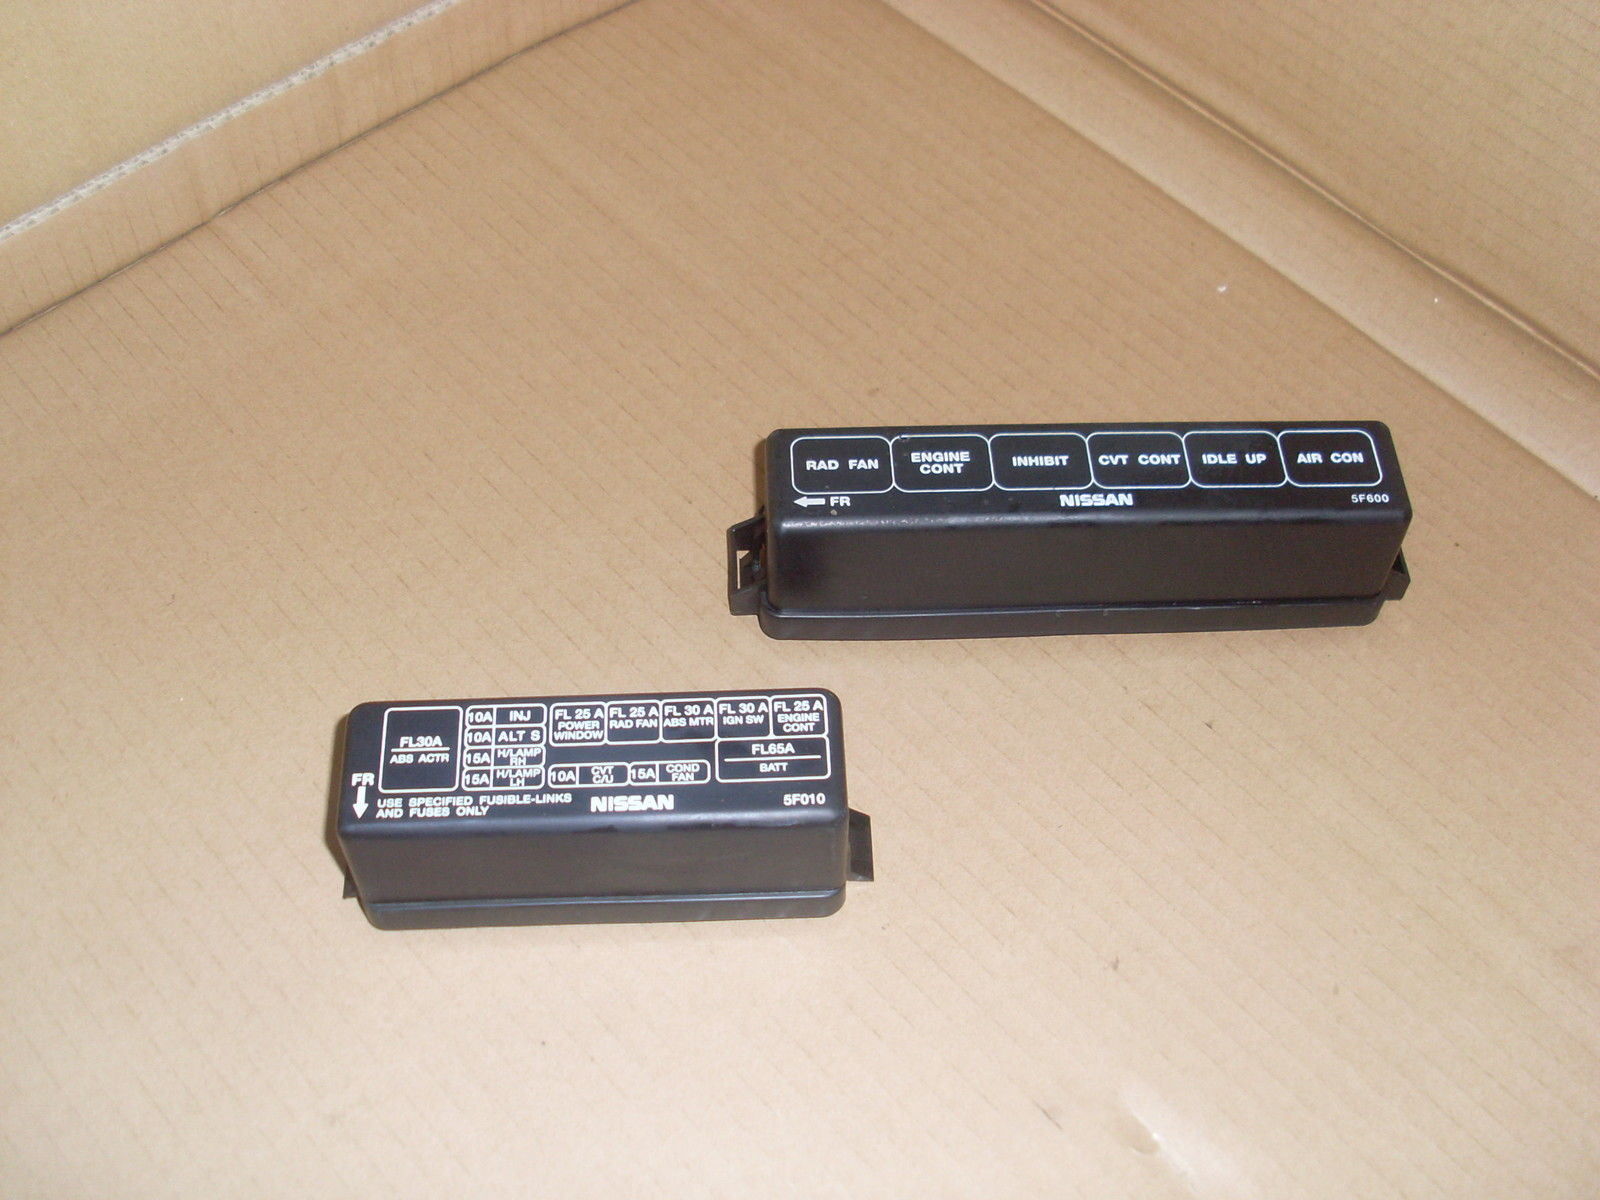 nissan micra k11 models from 1993 to 1998 engine bay fuse box cover